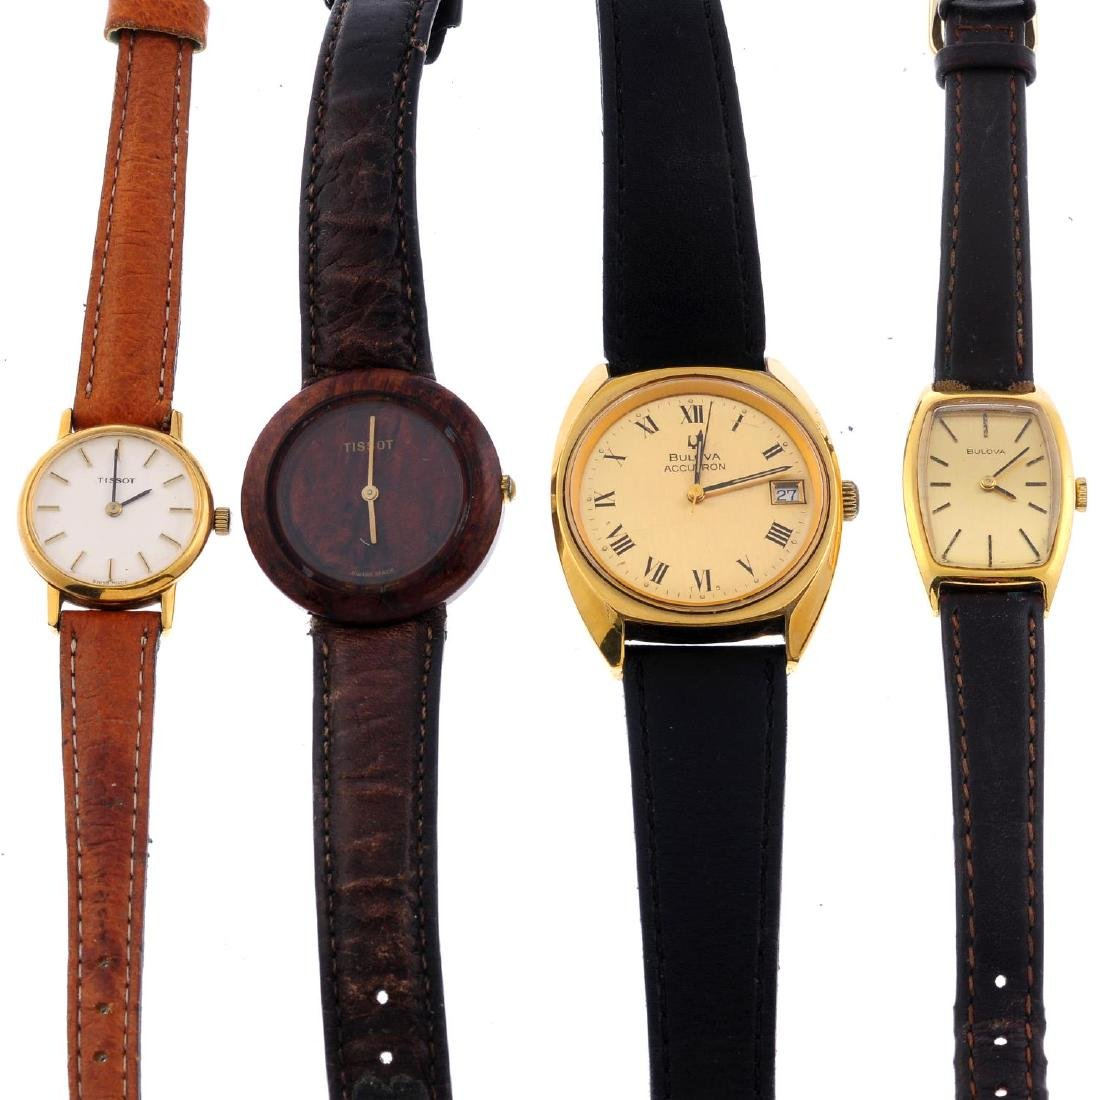 A group of four assorted watches, to include examples